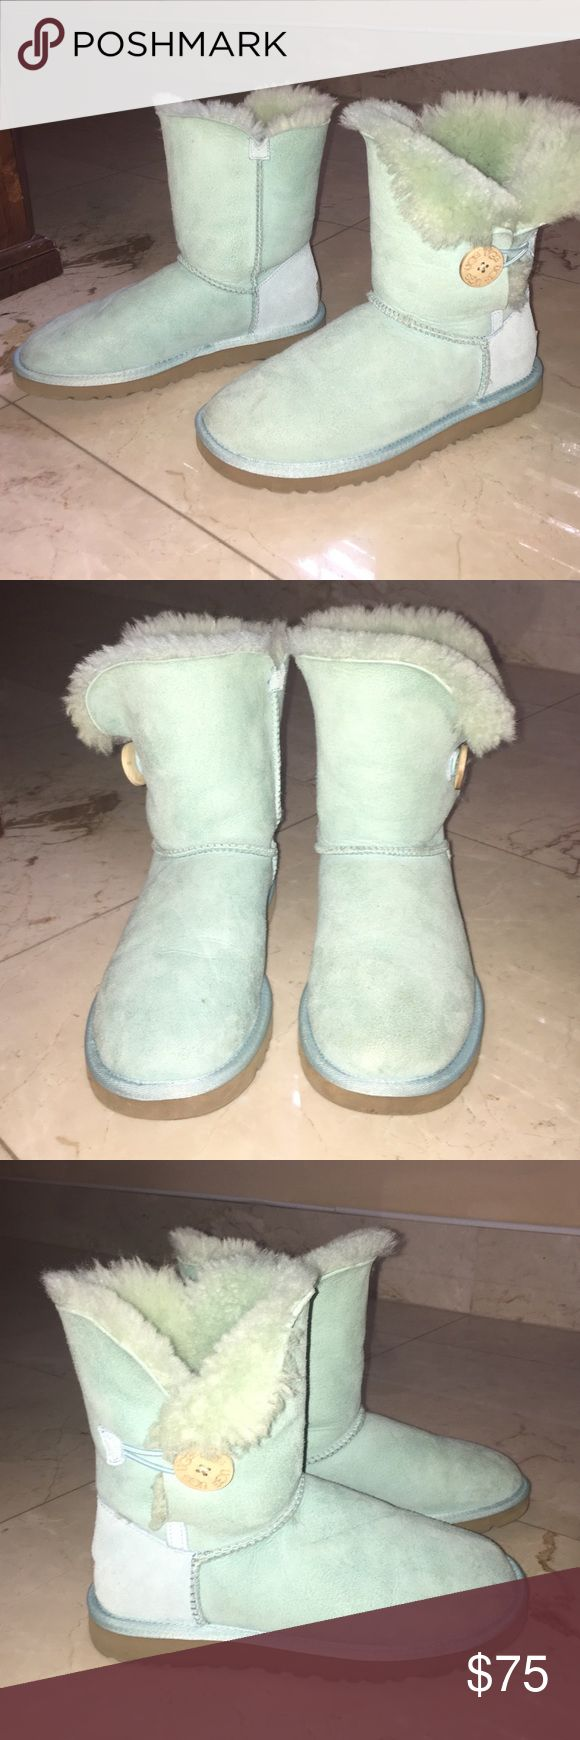 Light Blue UGG Boots Perfect condition light blue Ugg boots in a size 6. UGG Shoes Ankle Boots & Booties